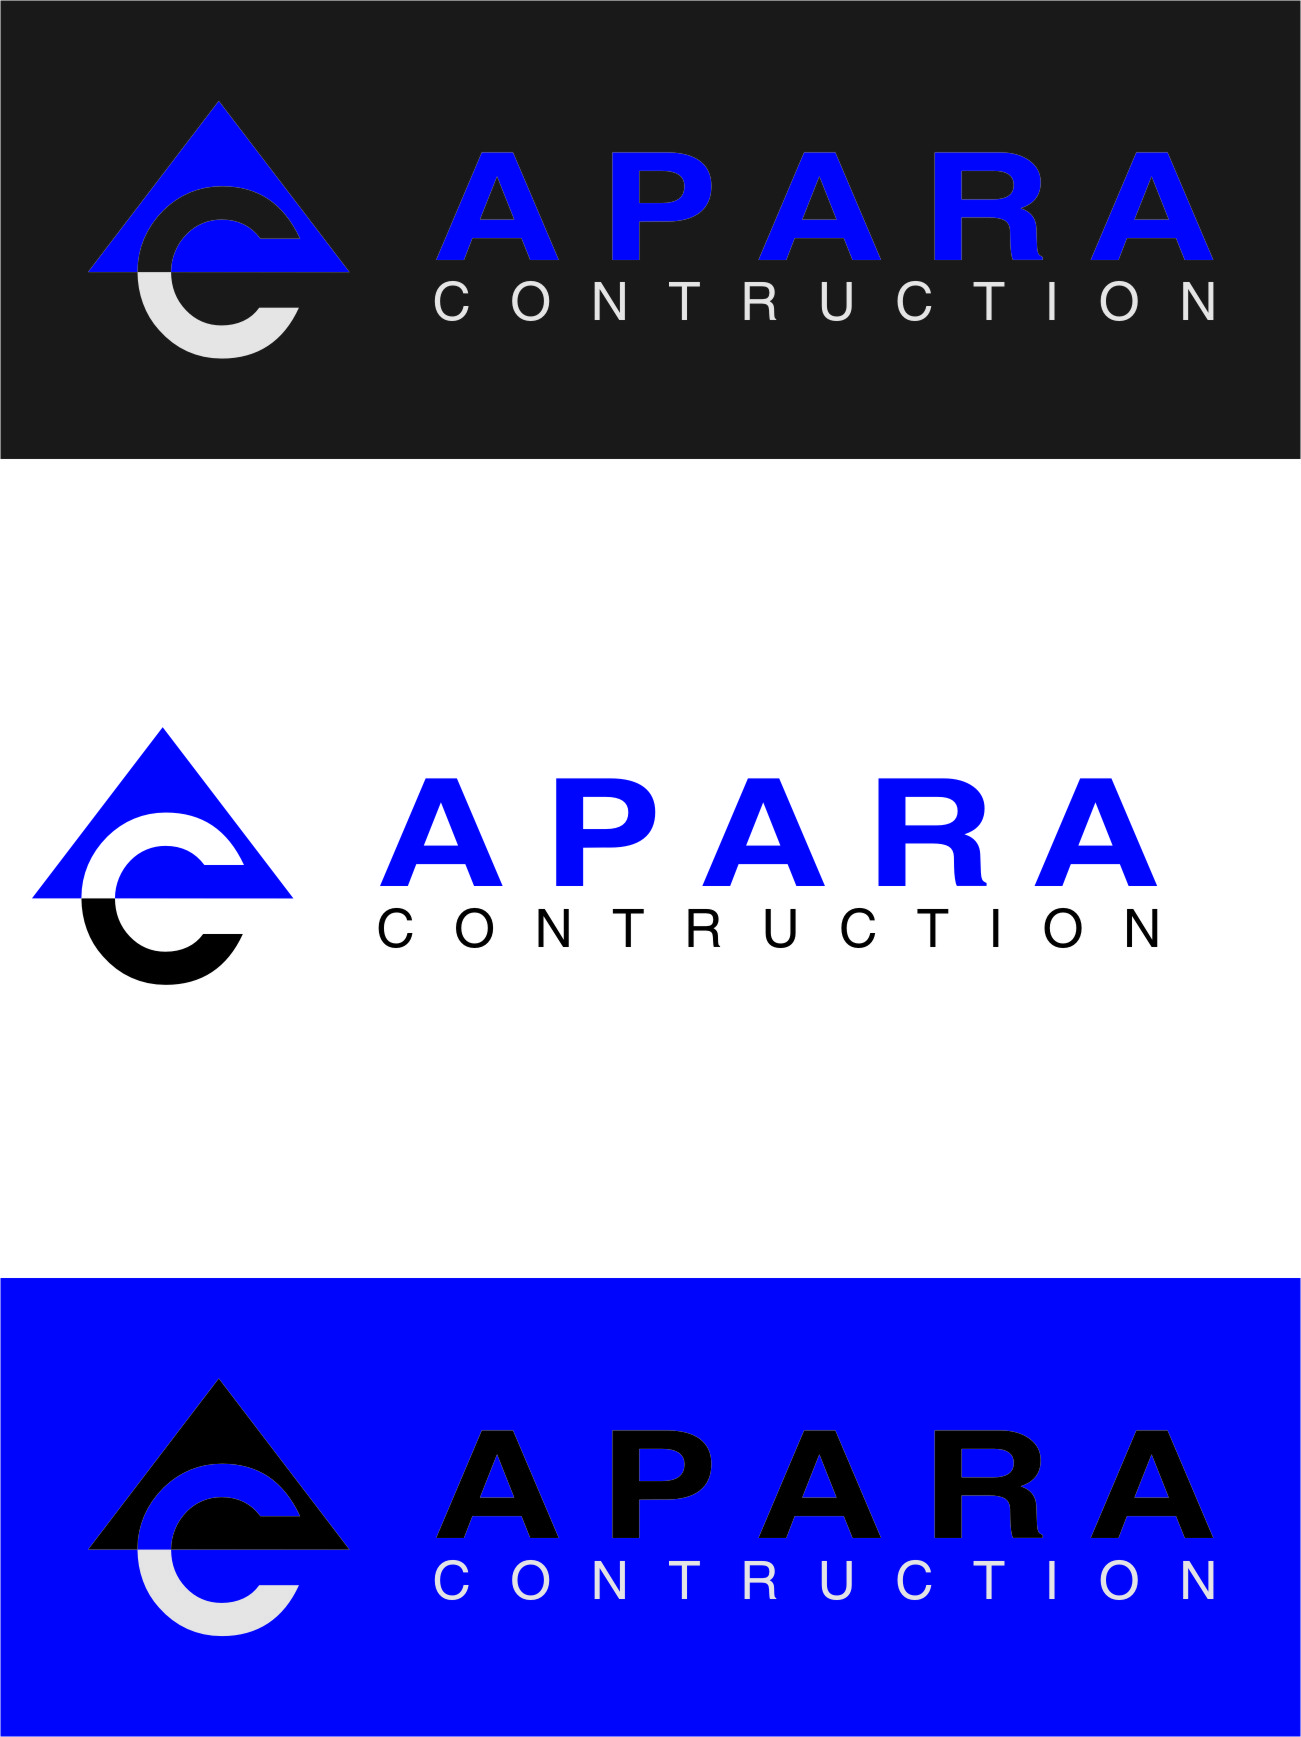 Logo Design by RasYa Muhammad Athaya - Entry No. 198 in the Logo Design Contest Apara Construction Logo Design.